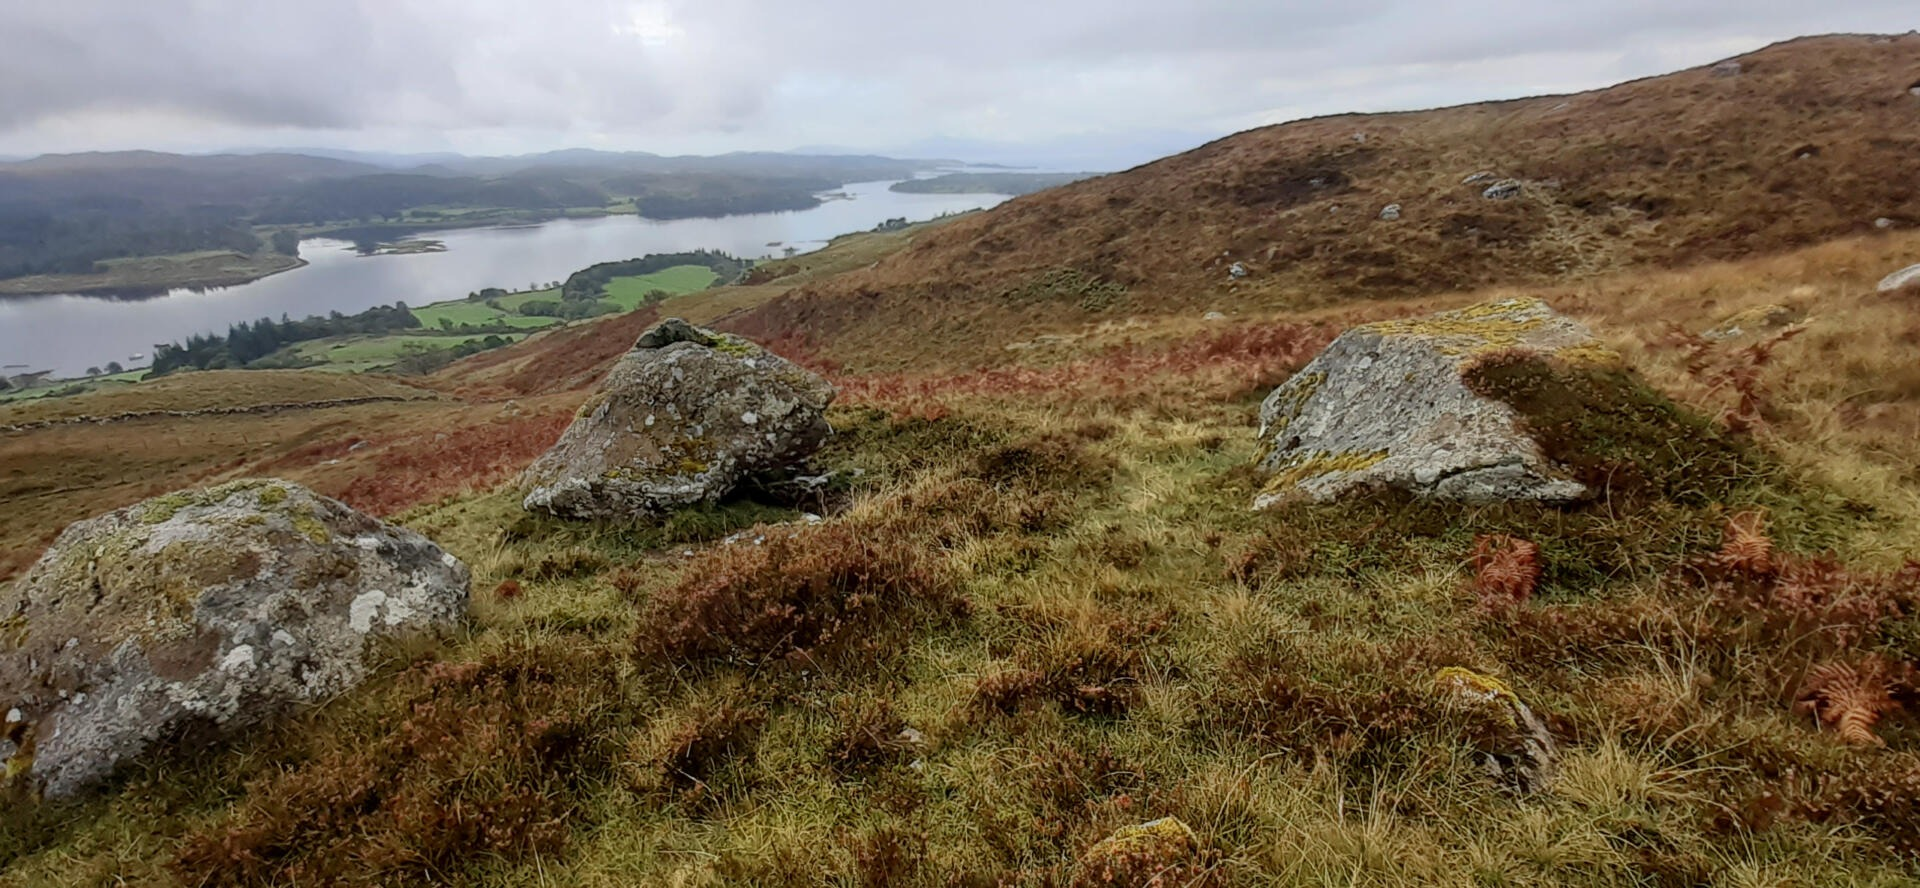 Open hillside with boulders in the foreground and a loch in the background